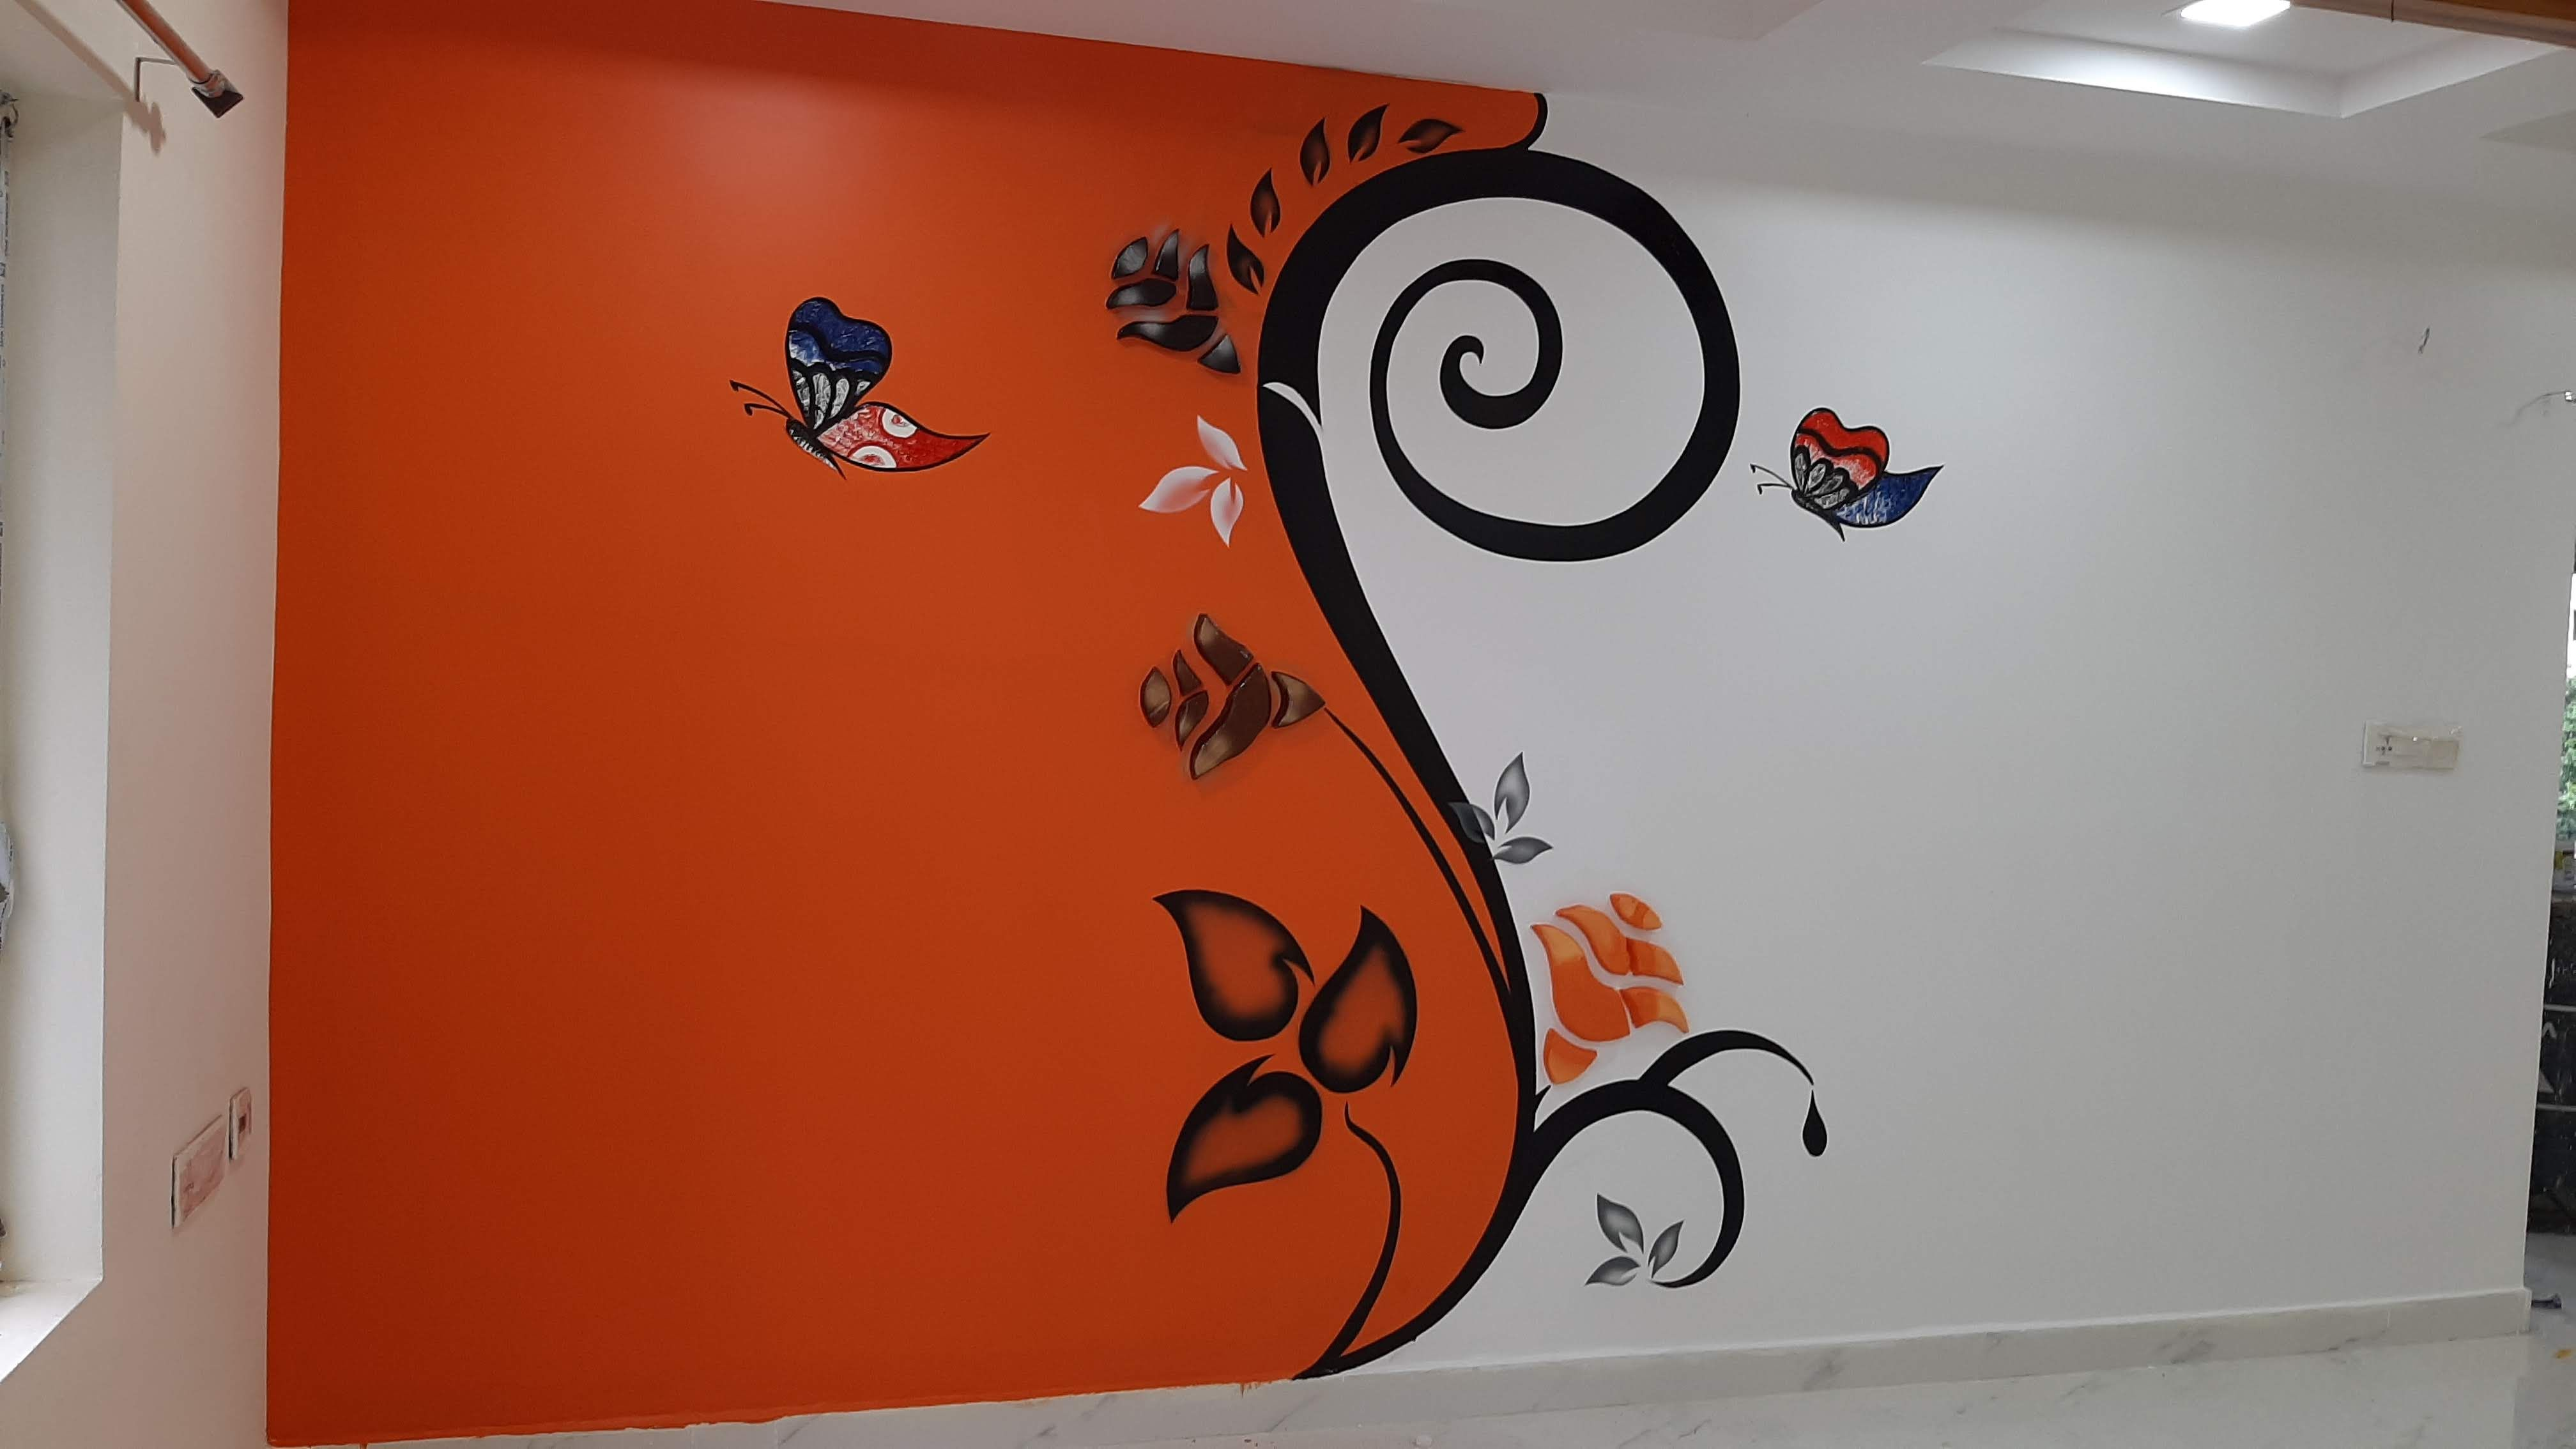 Creative Mural Wall Texture Design Ideas And Techniques Diy Wall Texture Design Wall Paint Designs Creative Wall Painting